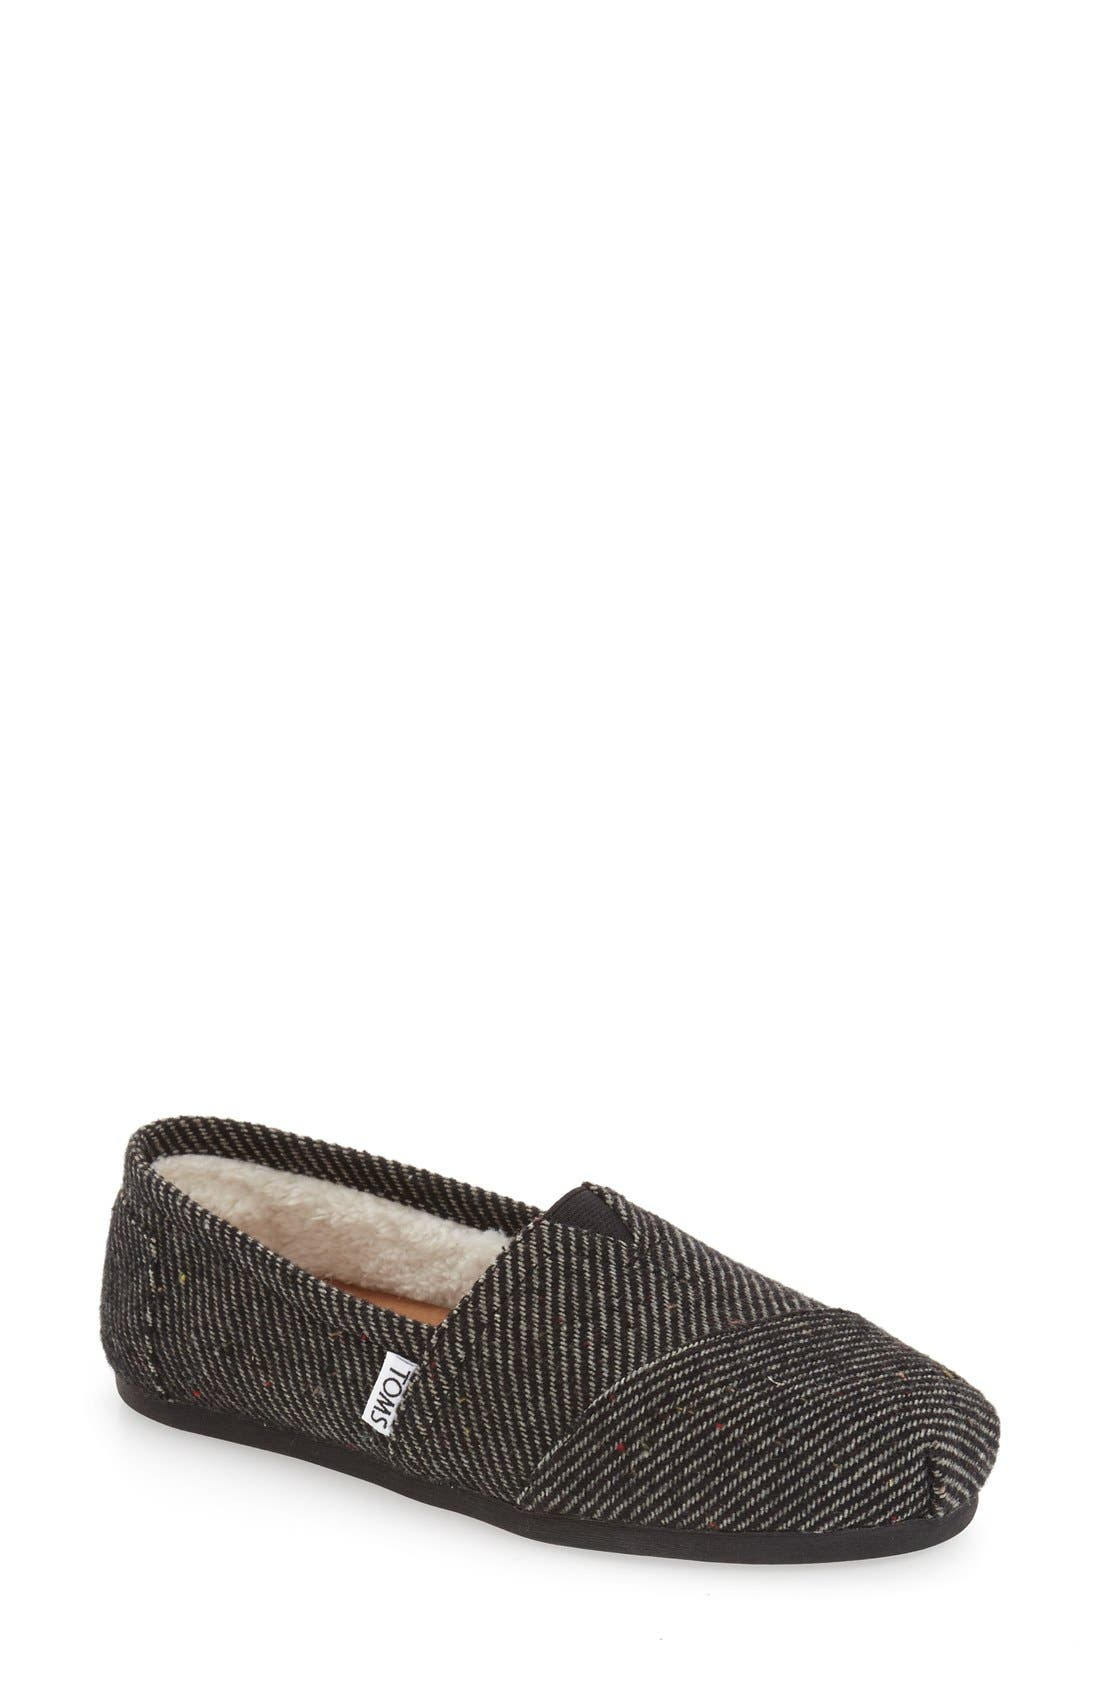 Alternate Image 1 Selected - TOMS Speckled Classic Slip-On (Women)